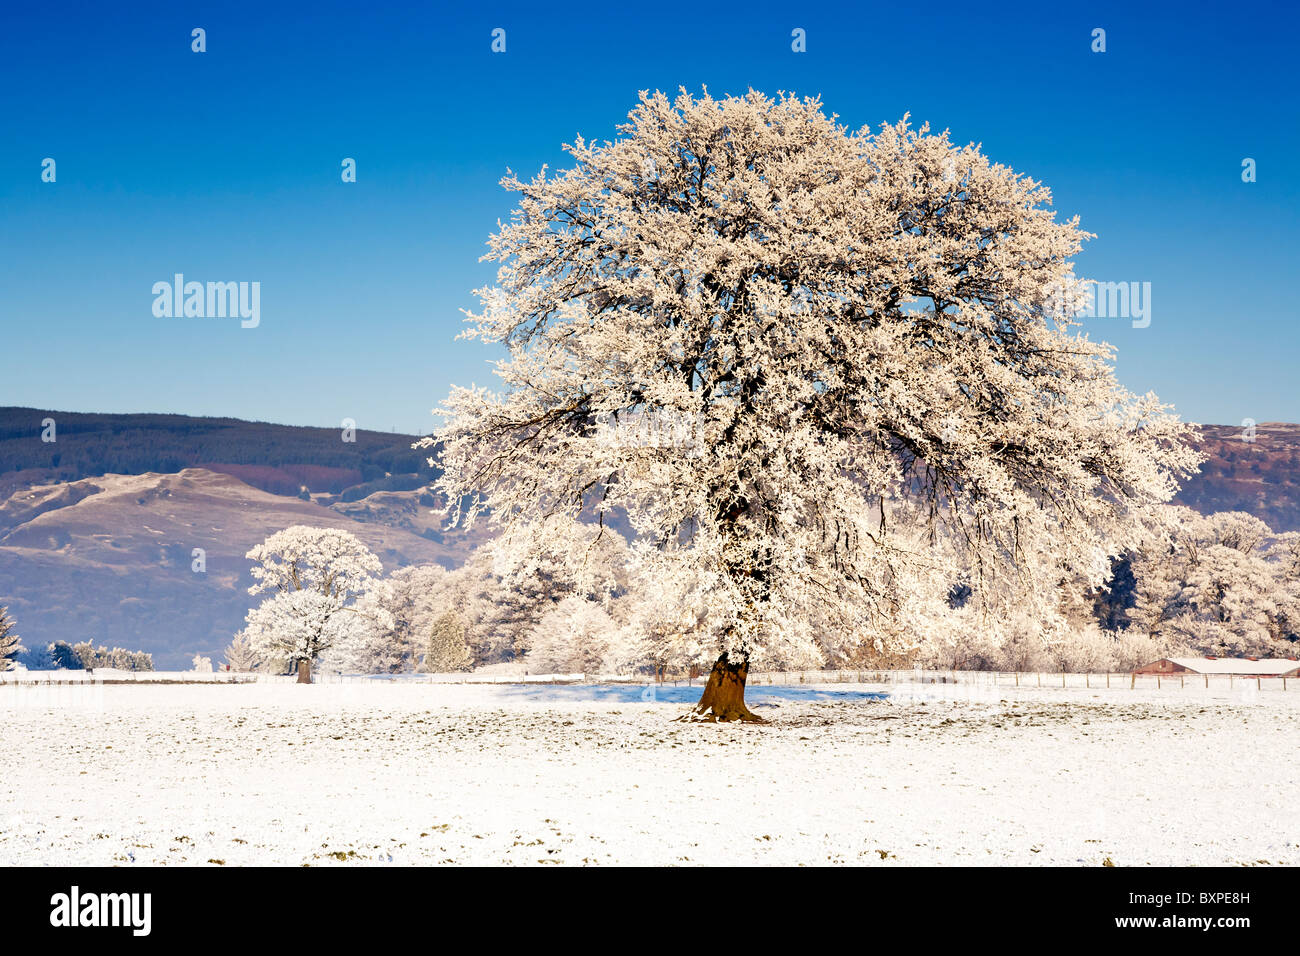 An isolated hoarfrost covered tree in the middle of a snow covered field in Winter, Scotland. - Stock Image